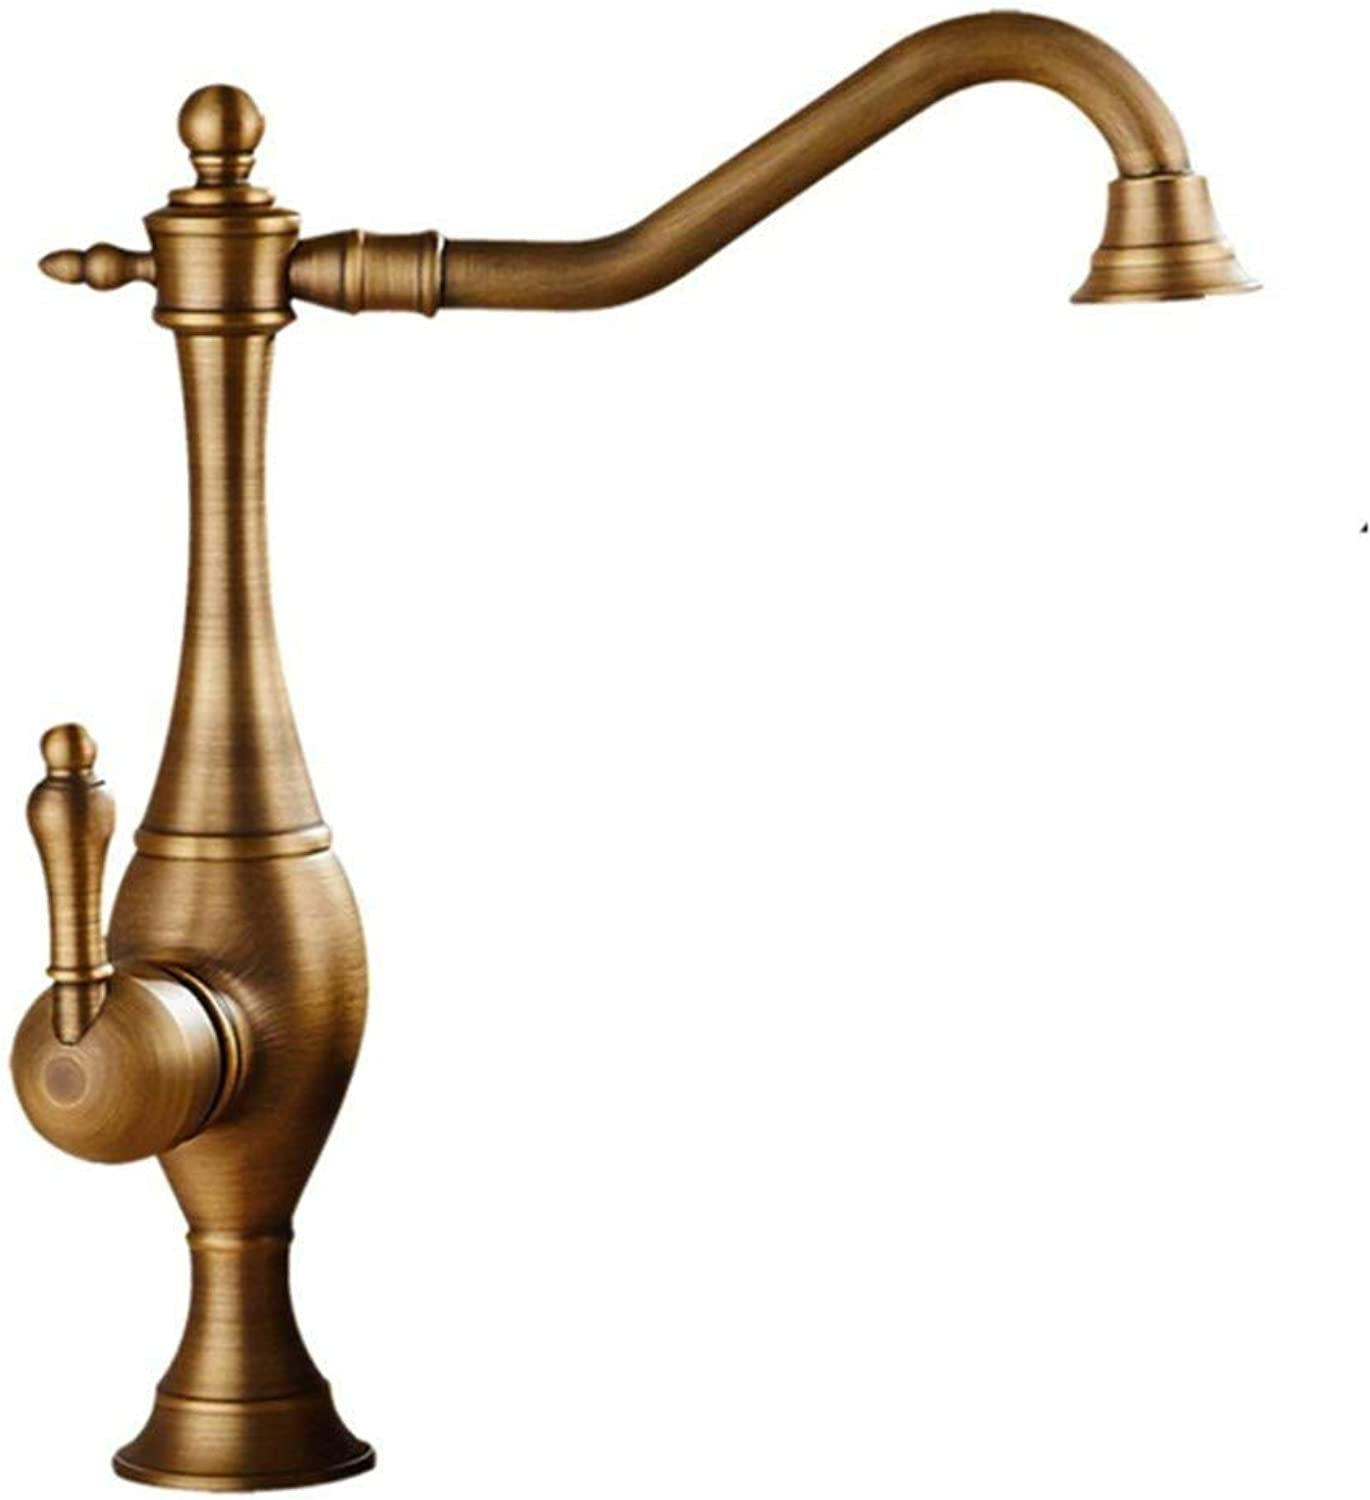 Basin Taps Swivel Spout Faucet Tap Traditional Single Lever Bathroom Taps Bath Water Faucet with 360 Degree Swivel Spout